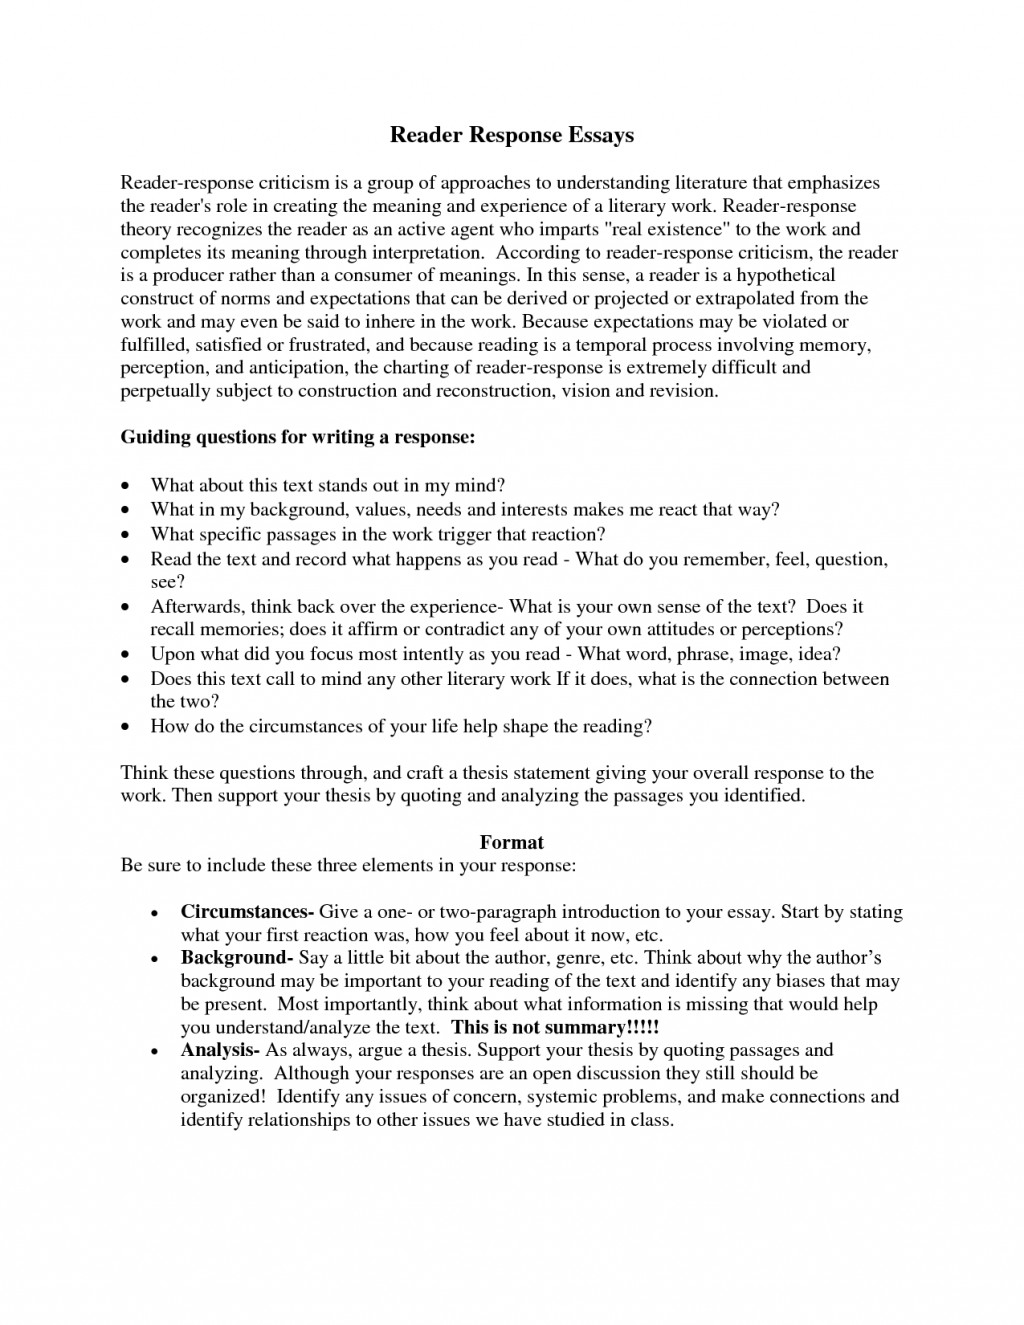 002 Essay Example Background Define Discuss And Illustrate With Sample Of Critical Response Summary Analysis Crossing Brooklyn How To Write Introduction Writing Workshop An Singular Rough Draft Large